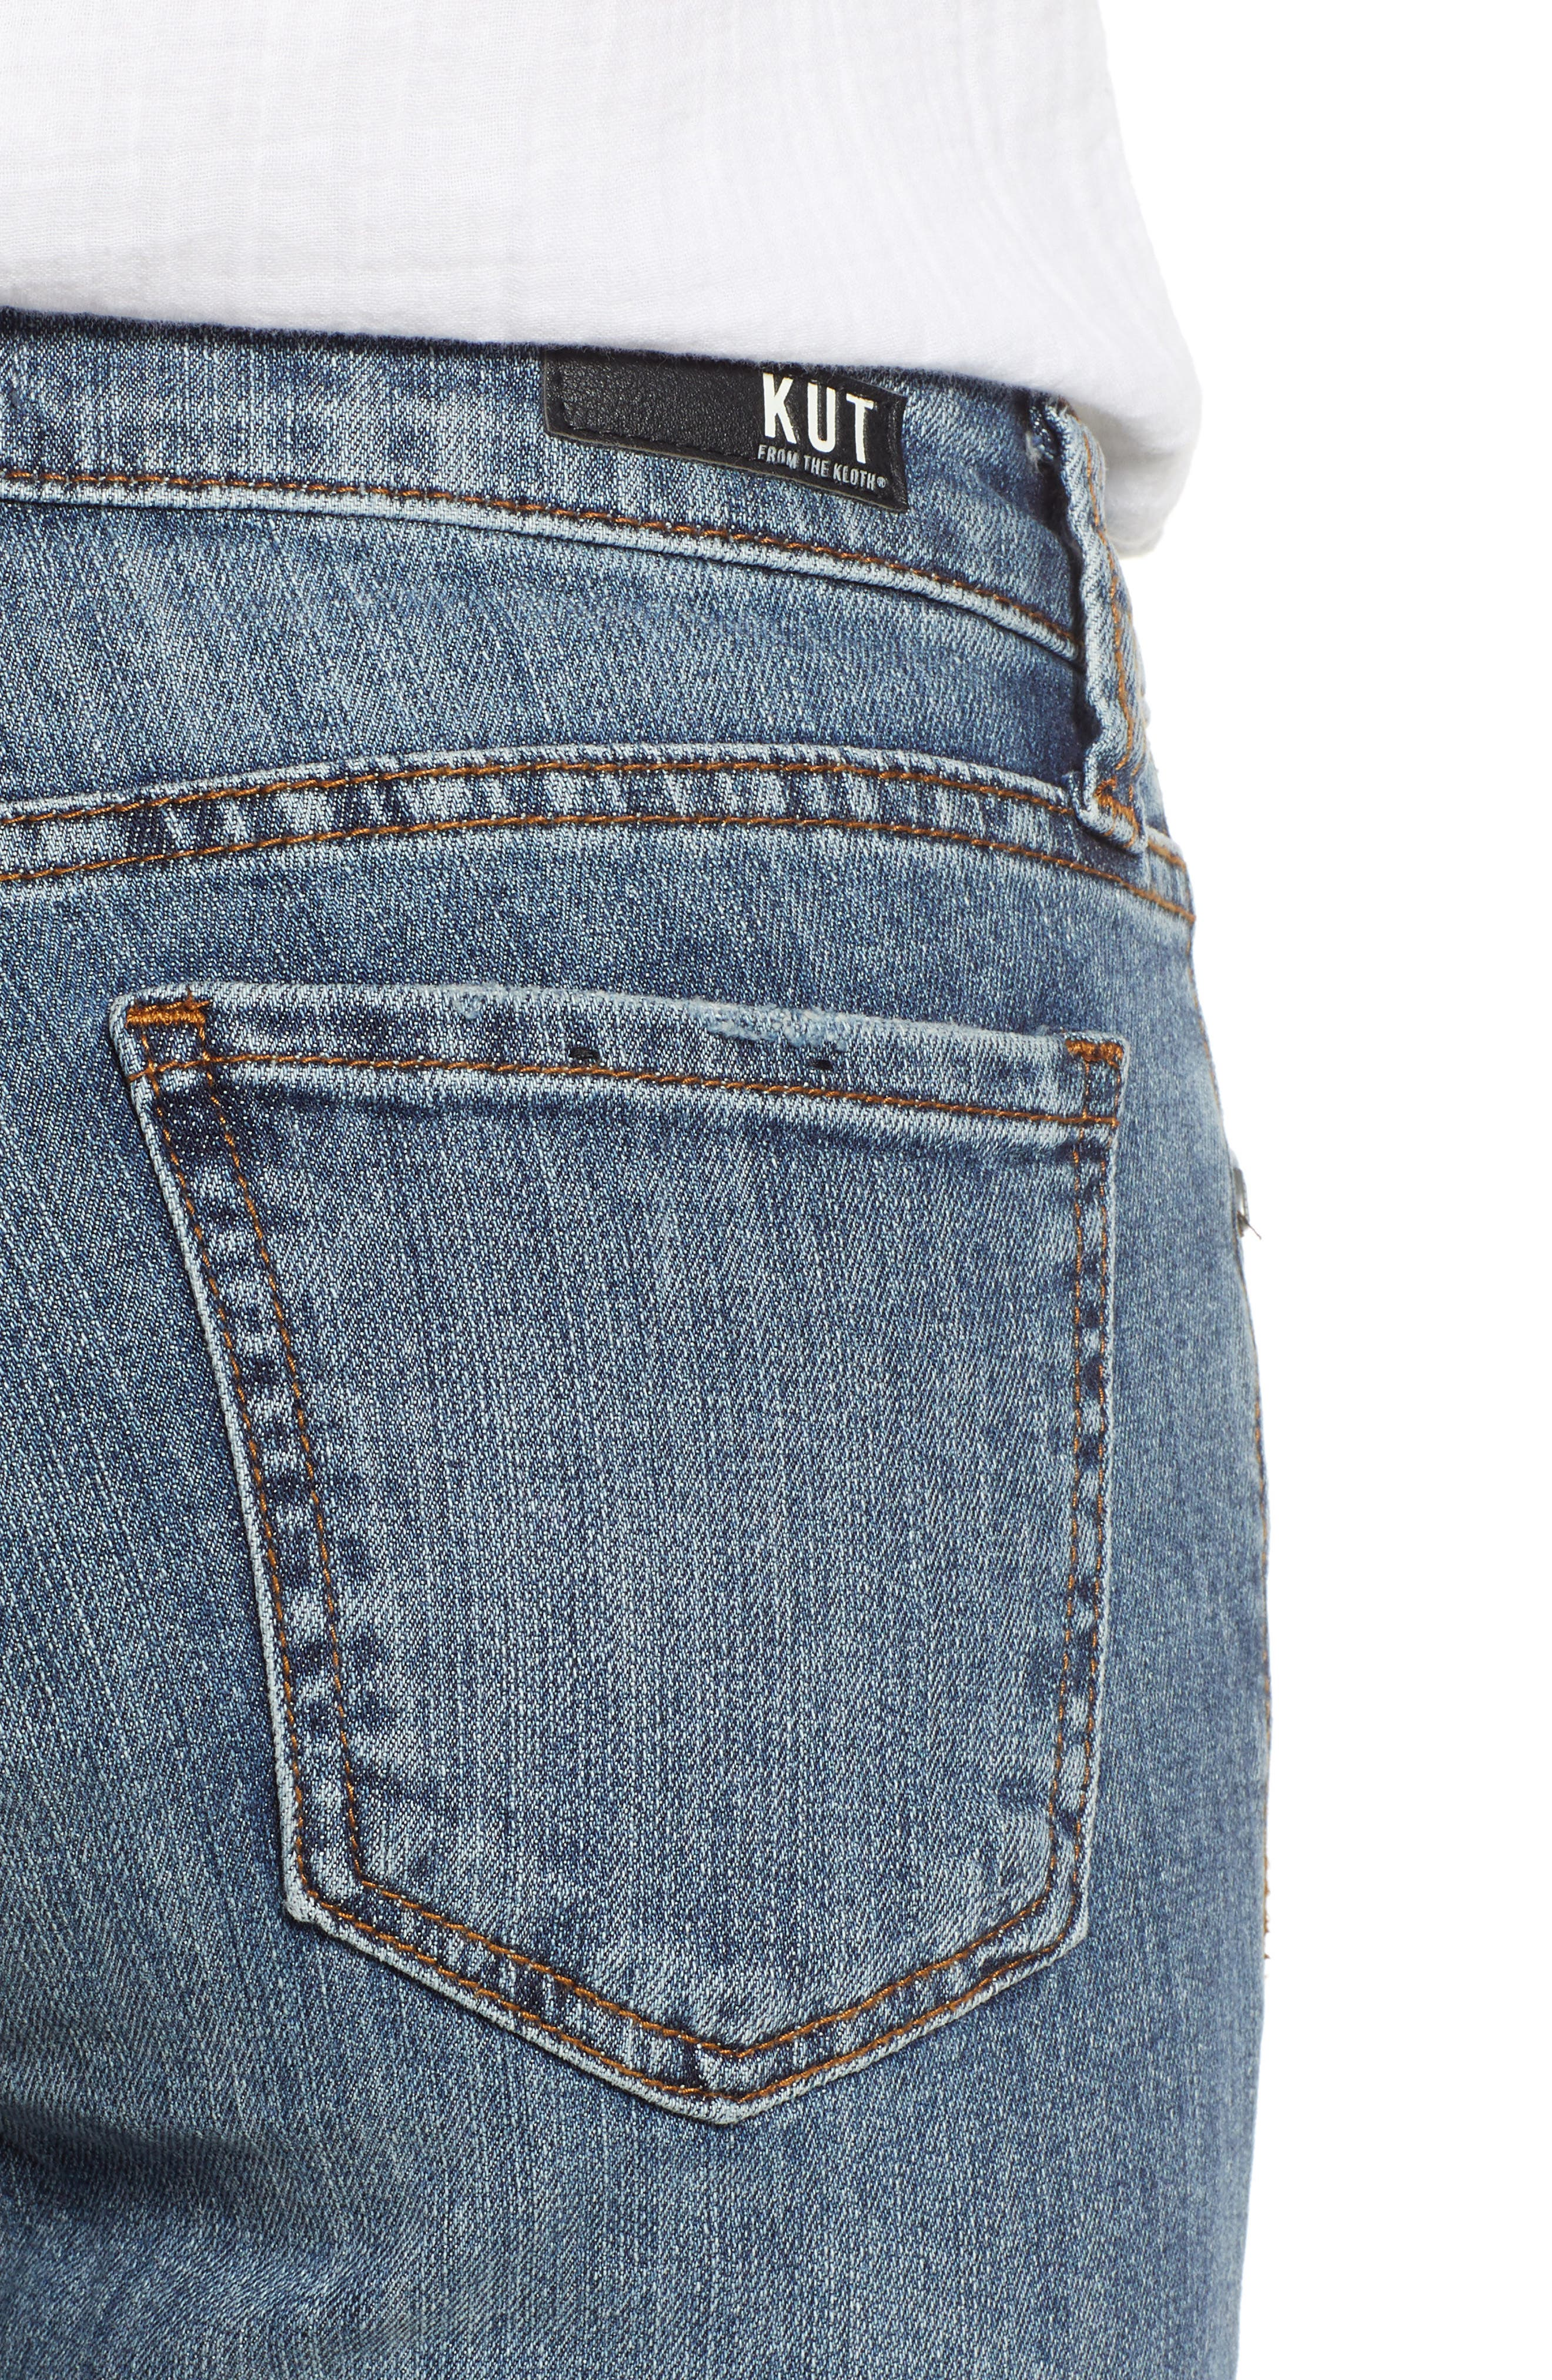 KUT from the Kloth Connie Raw Hem Ankle Jeans,                             Alternate thumbnail 4, color,                             Refinement